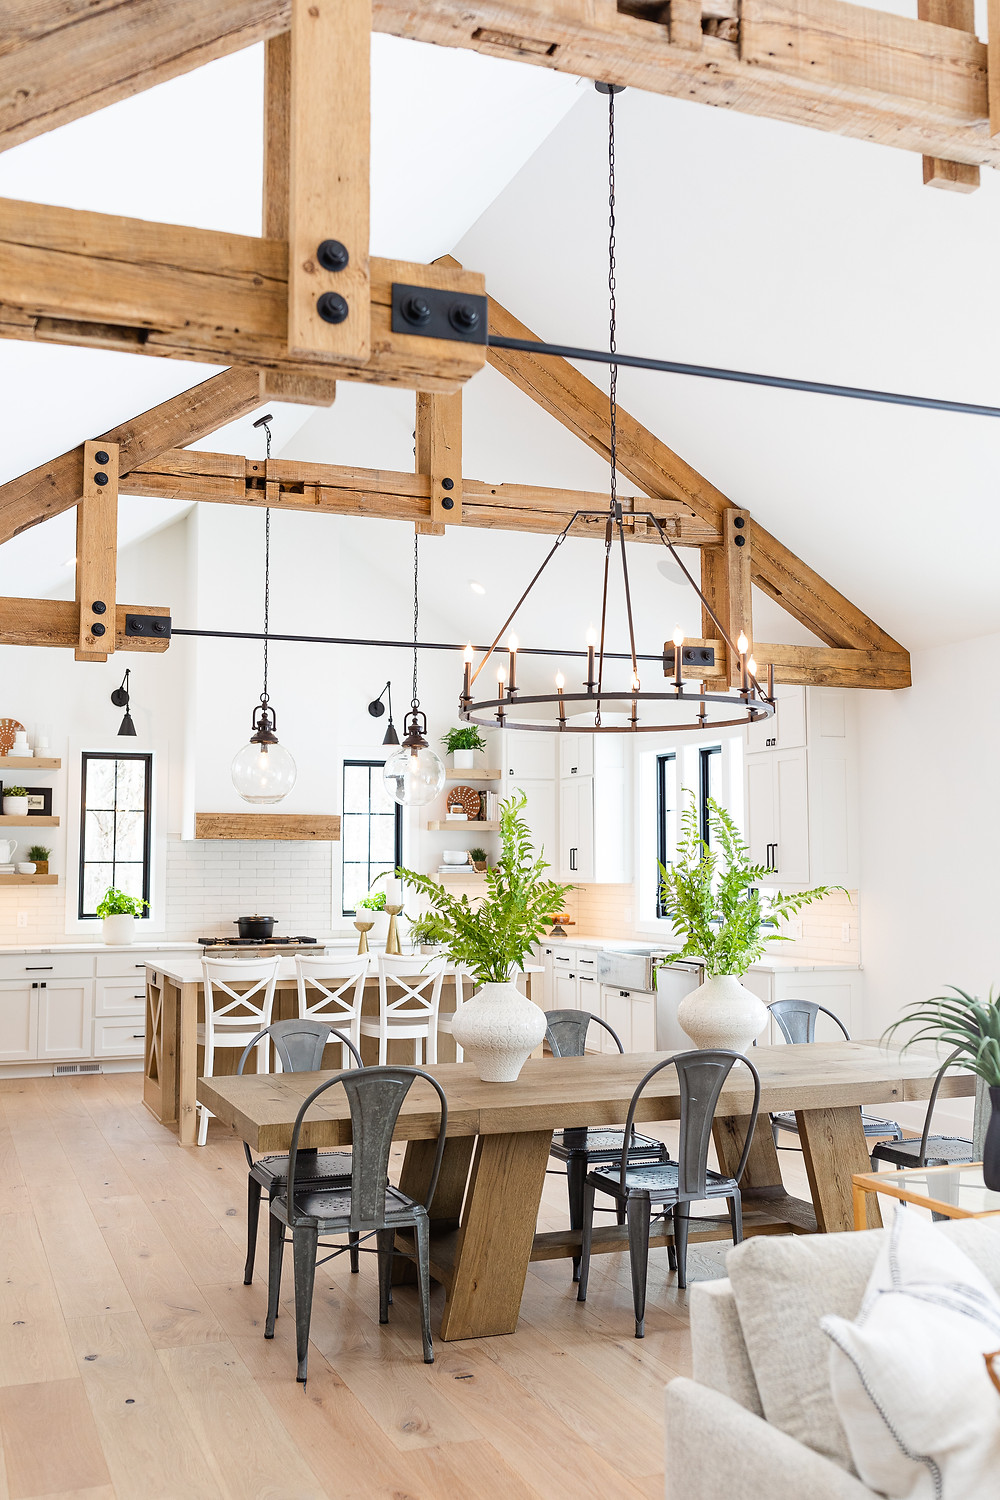 Rustic beams in the dining and kitchen